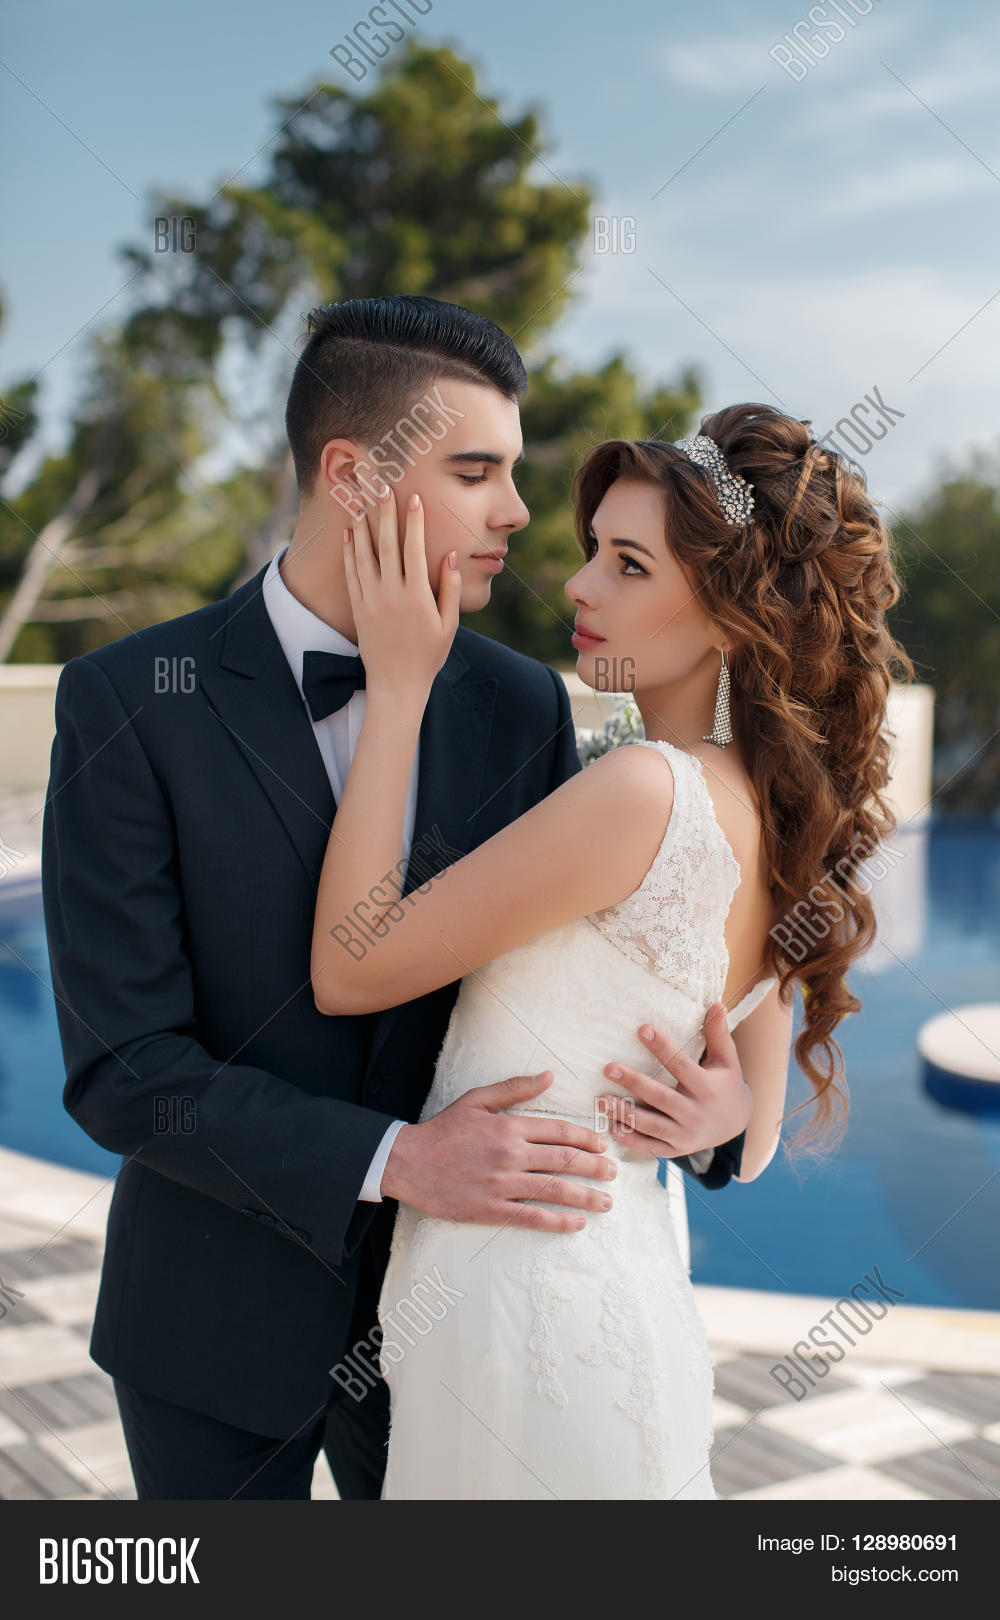 6c8f1d54bc5c8 Young Loving Couple, Image & Photo (Free Trial) | Bigstock